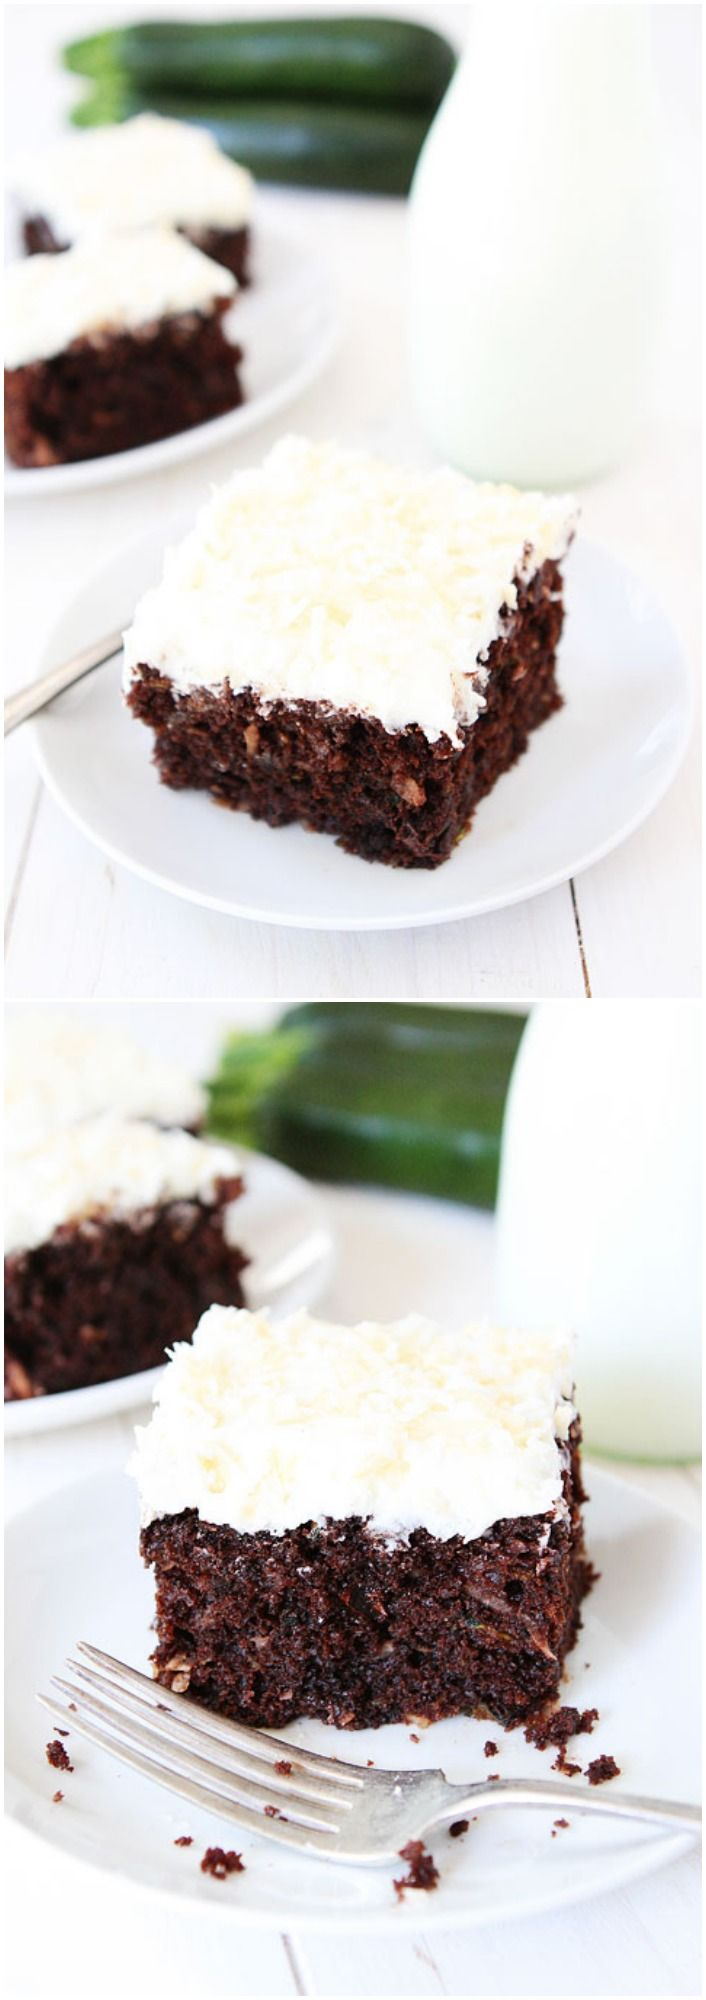 Chocolate Zucchini Coconut Cake Recipe on twopeasandtheirpod.com This chocolate cake is amazing! You will never know there is zucchini inside!